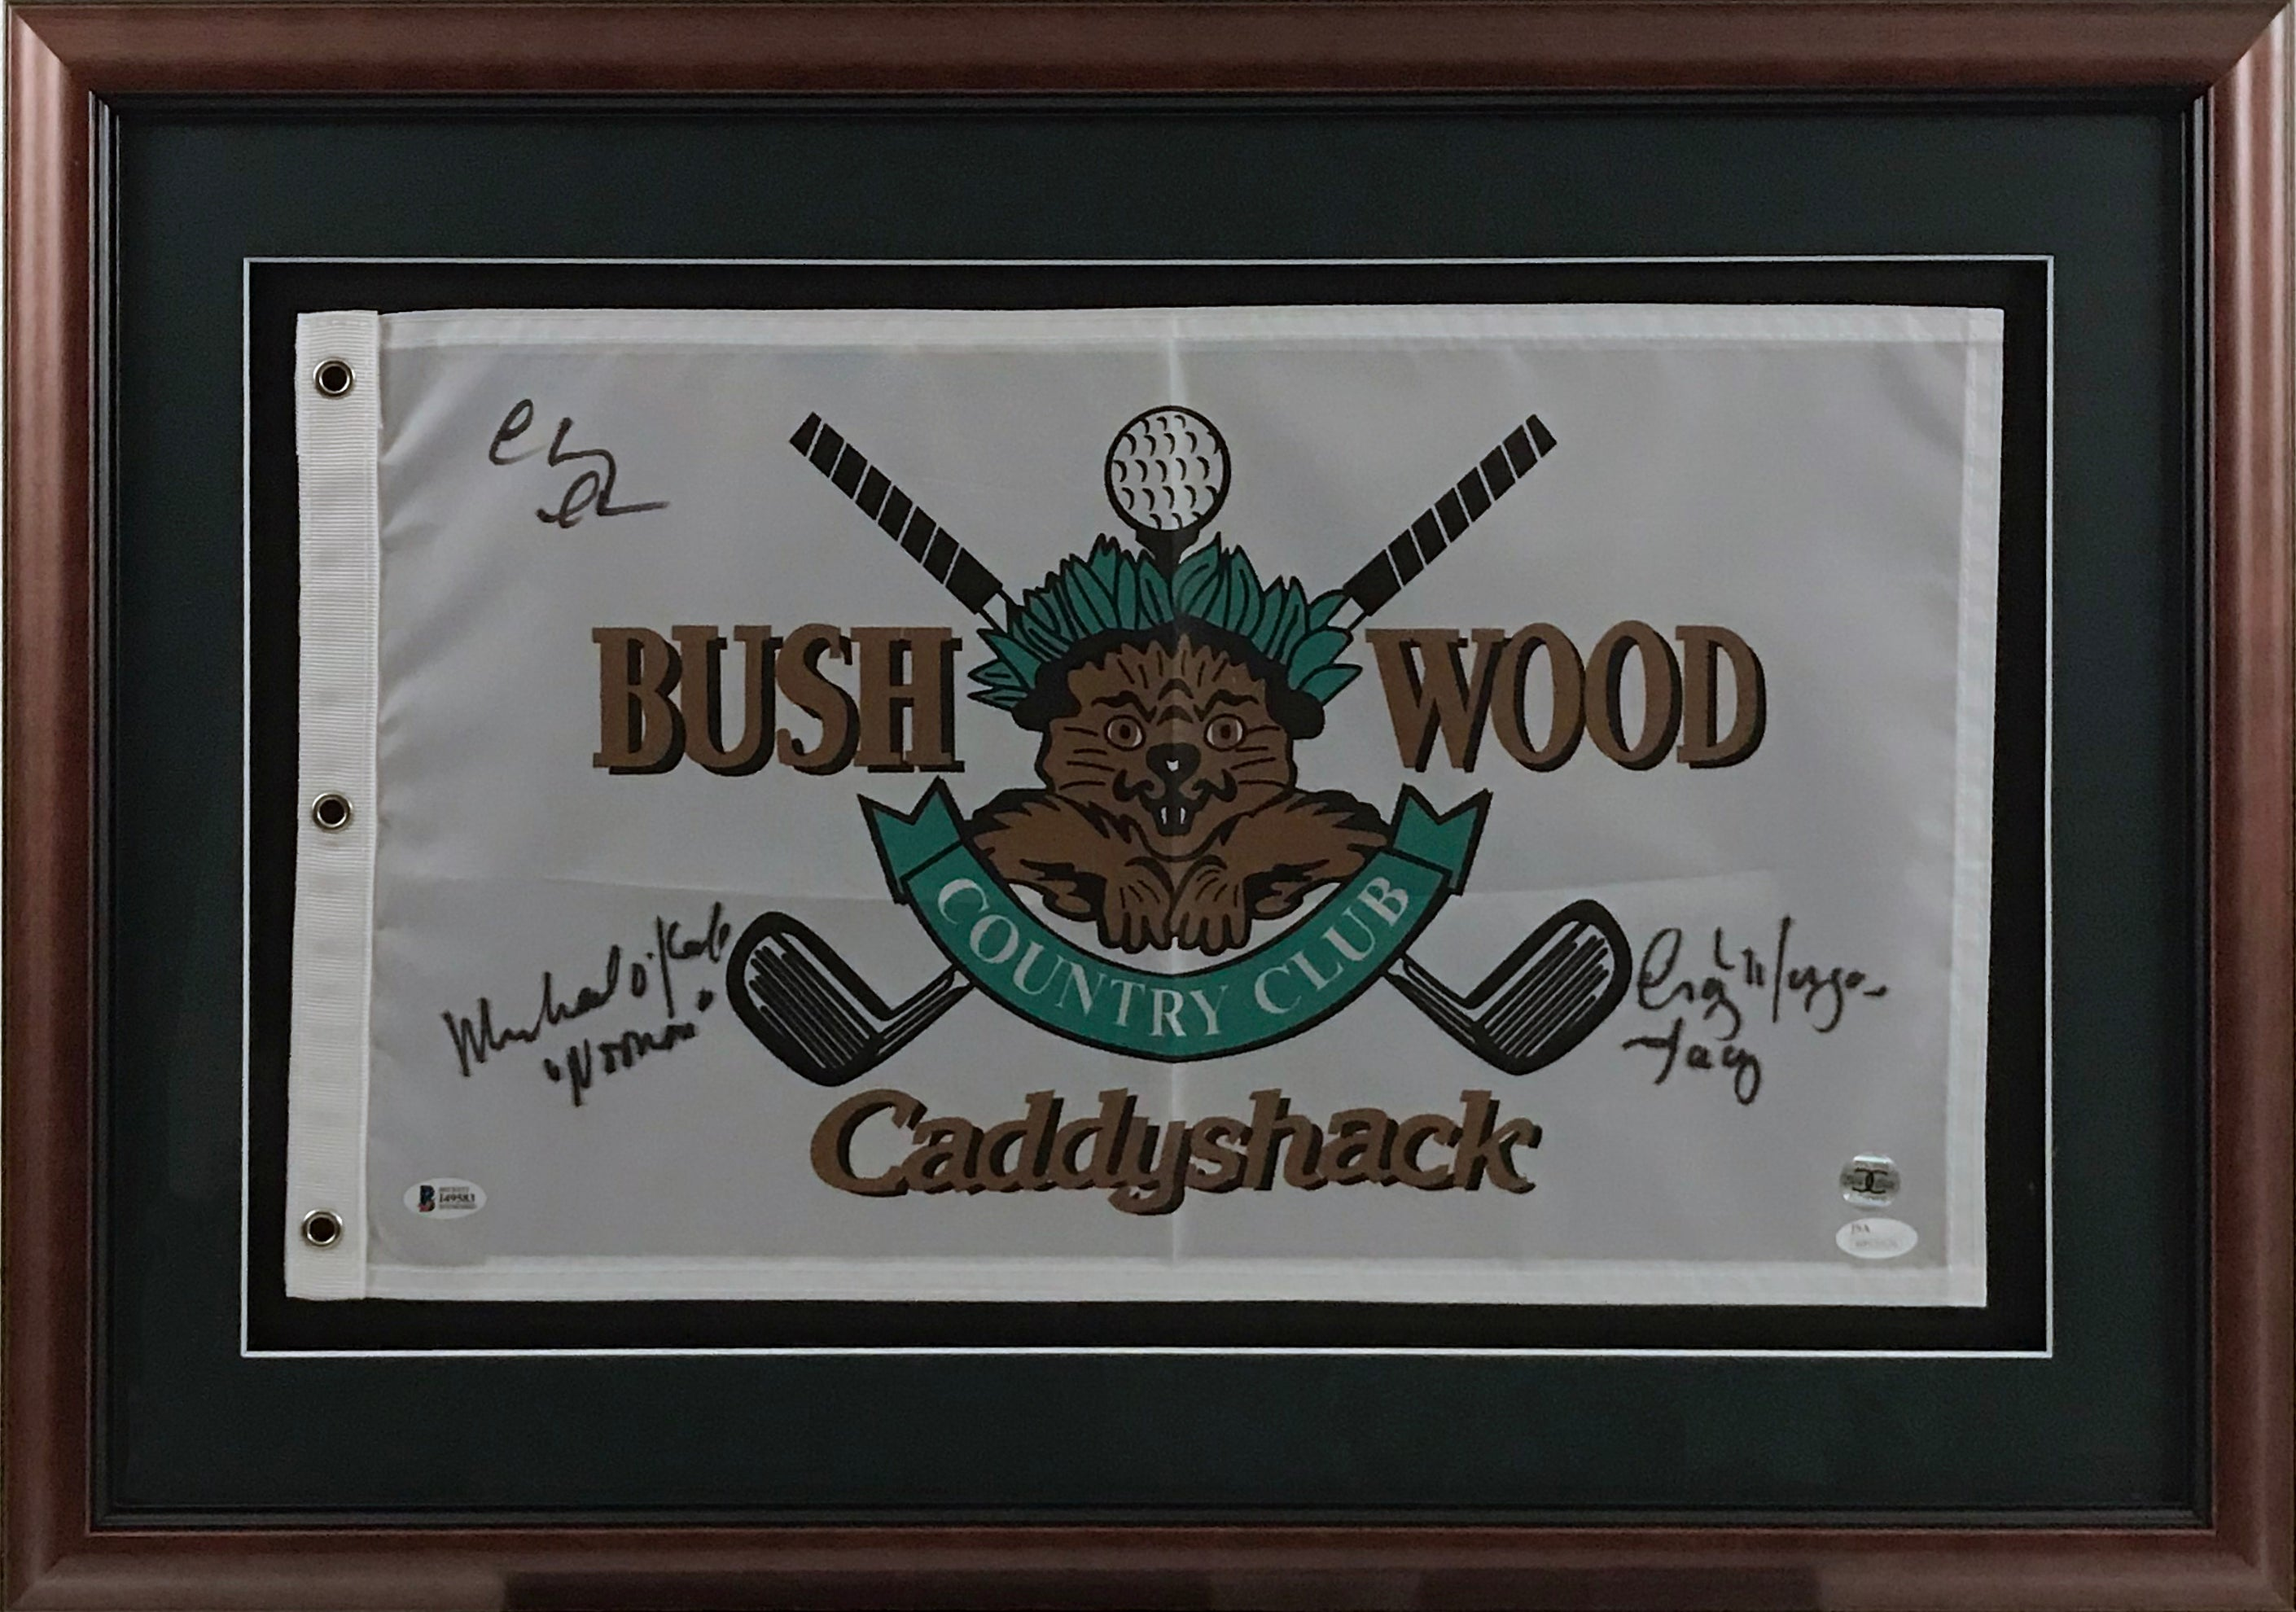 Framed Bushwood Caddyshack Flag Signed by Chase, Morgan, and O'Keefe